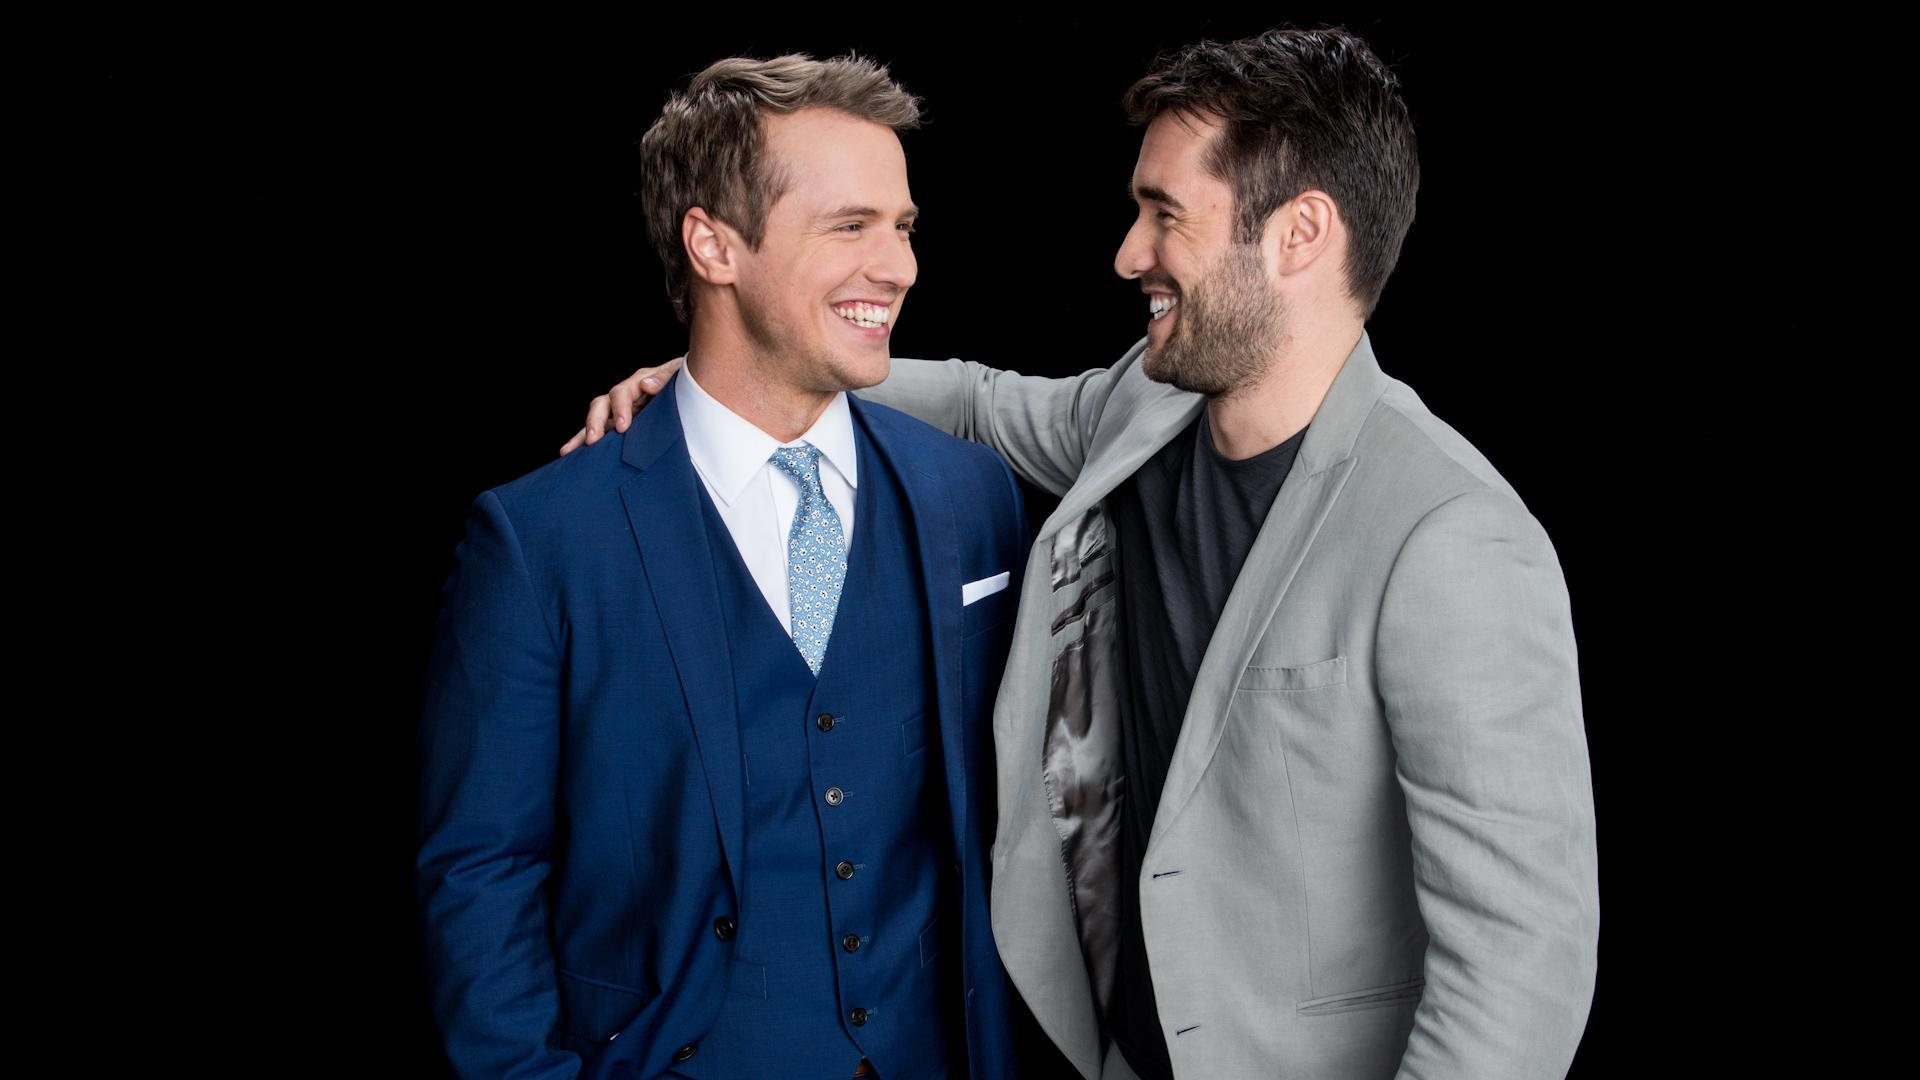 Freddie Stroma And Josh Bowman Discuss Their Series Time After